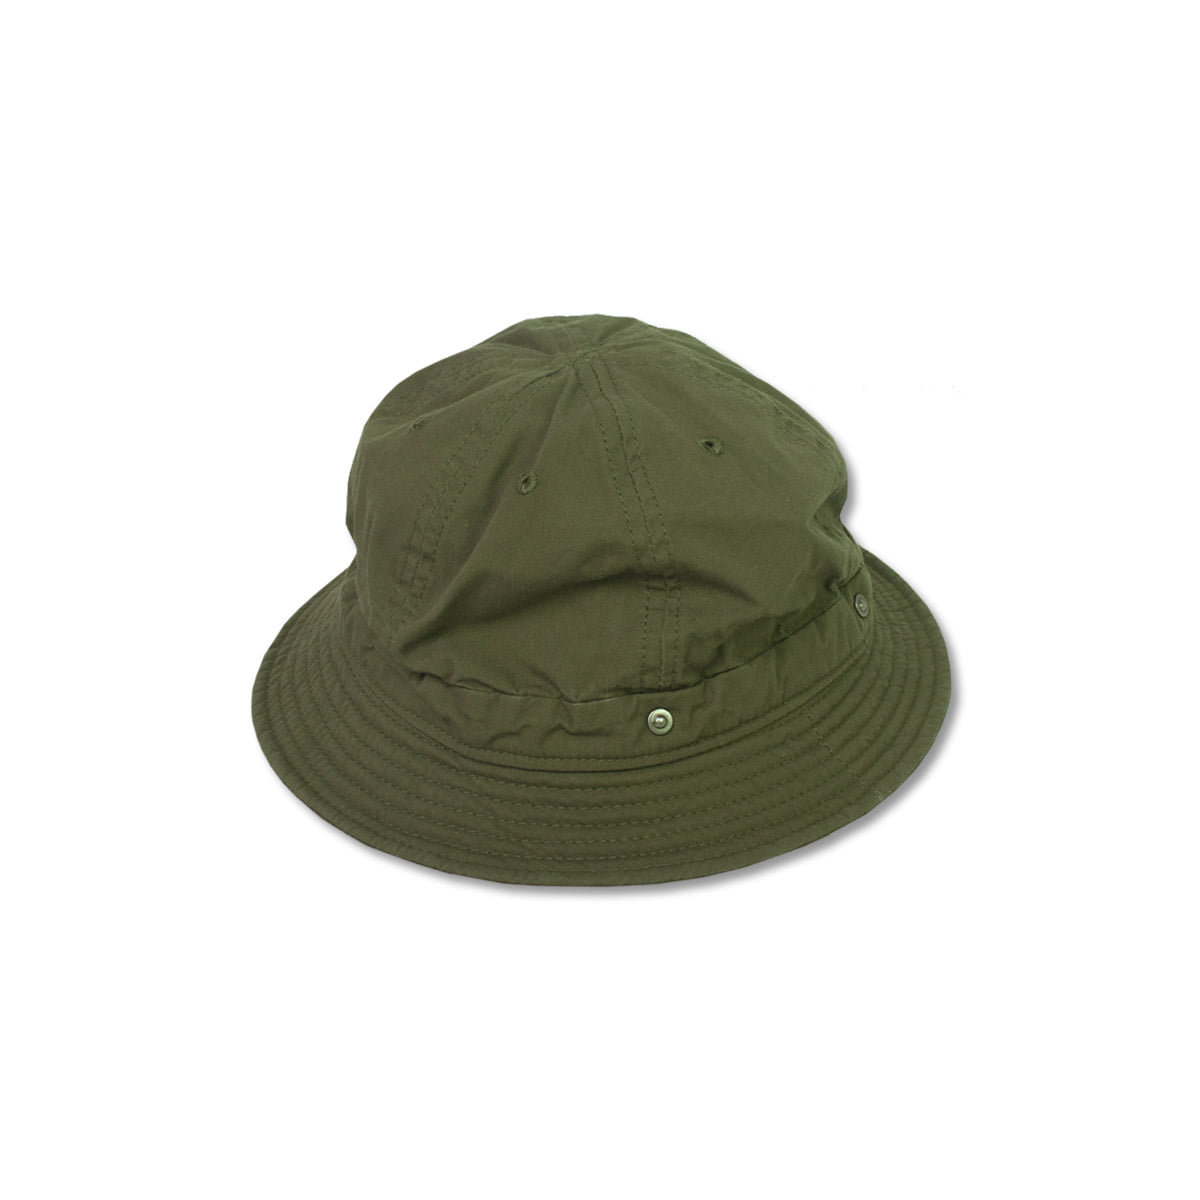 [DECHO] SHALLOW KOME HAT 'OLIVE'